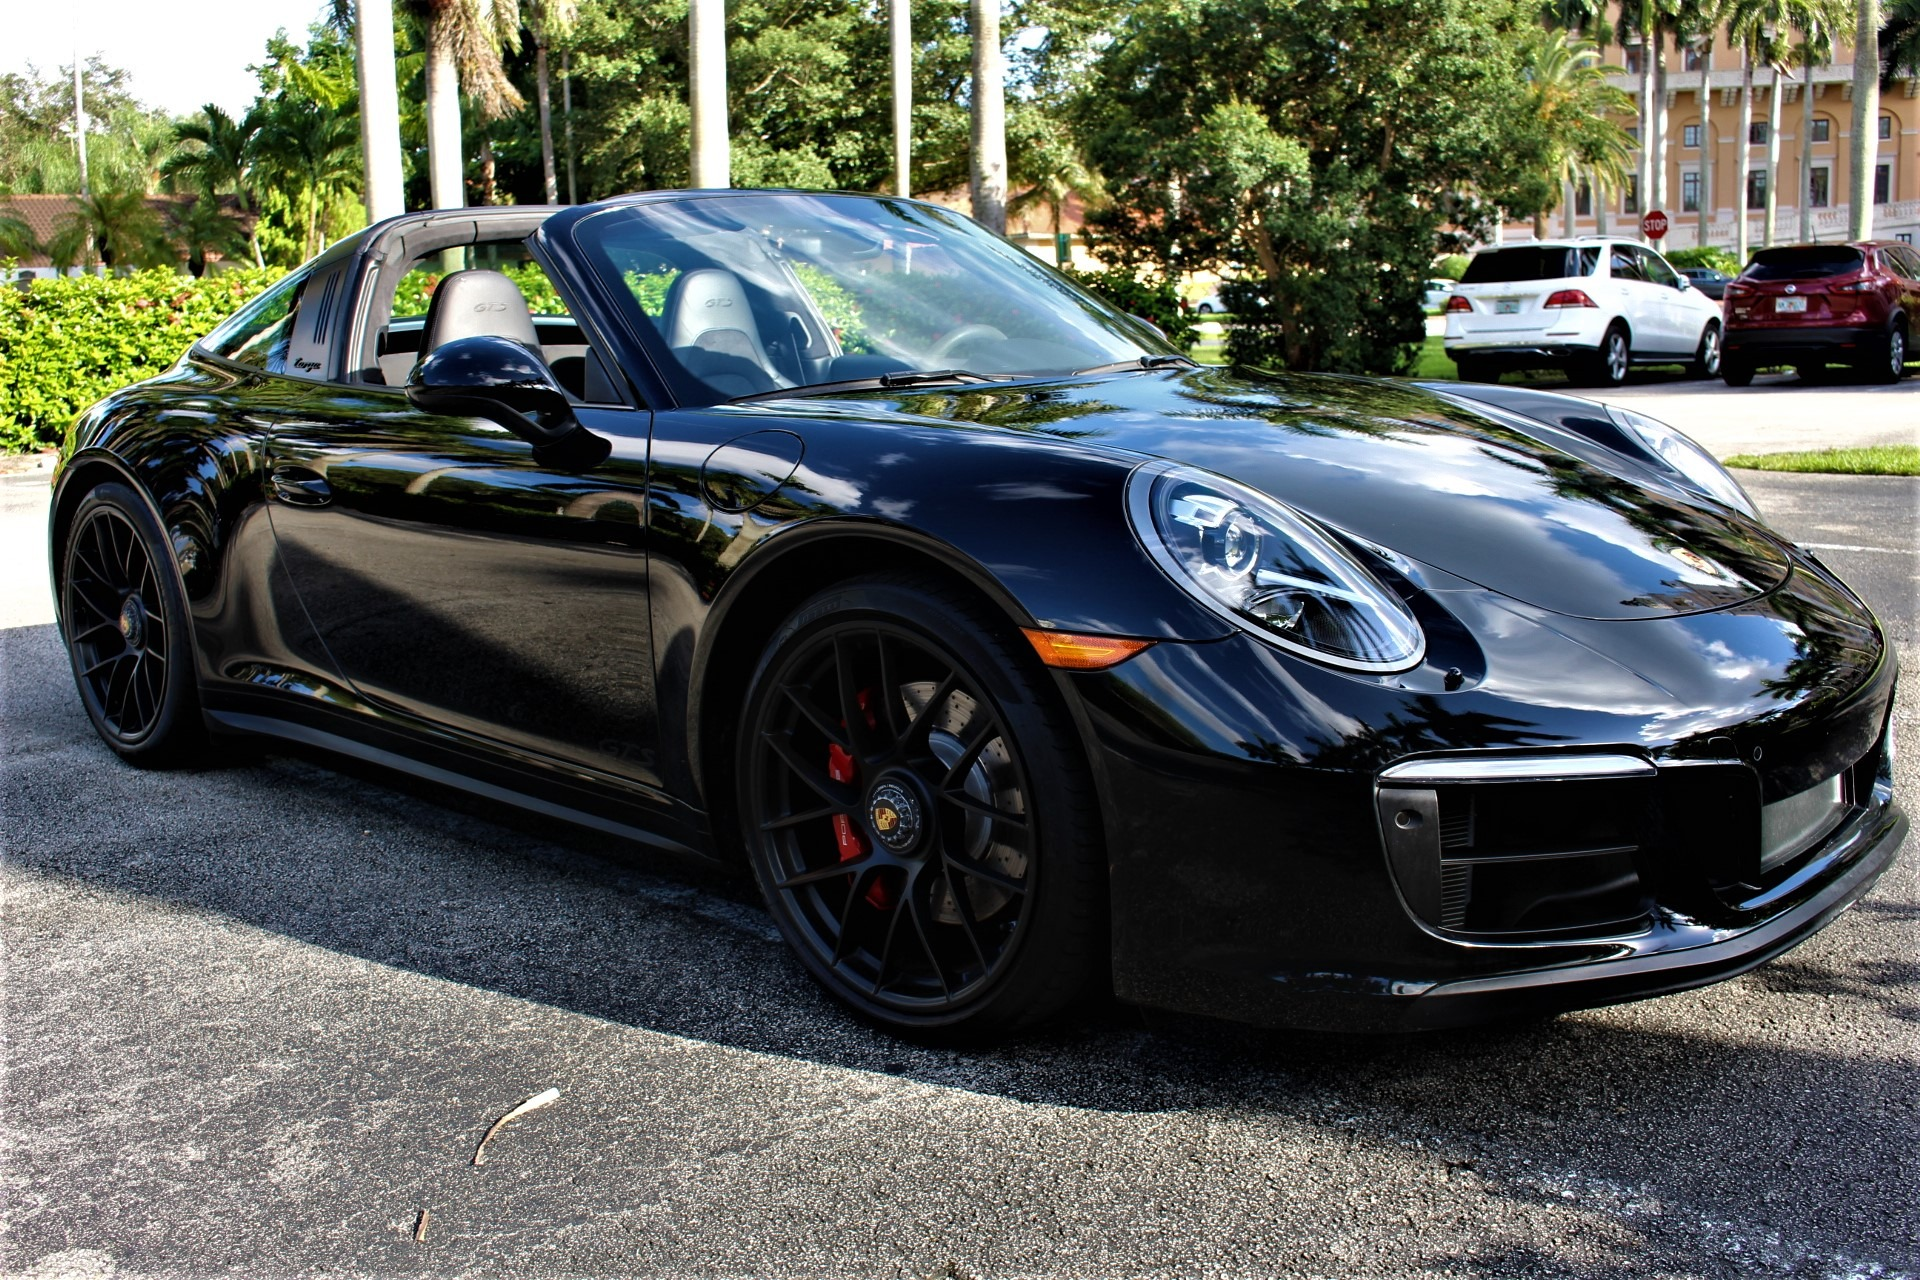 Used 2018 Porsche 911 Targa 4 GTS for sale $149,850 at The Gables Sports Cars in Miami FL 33146 2